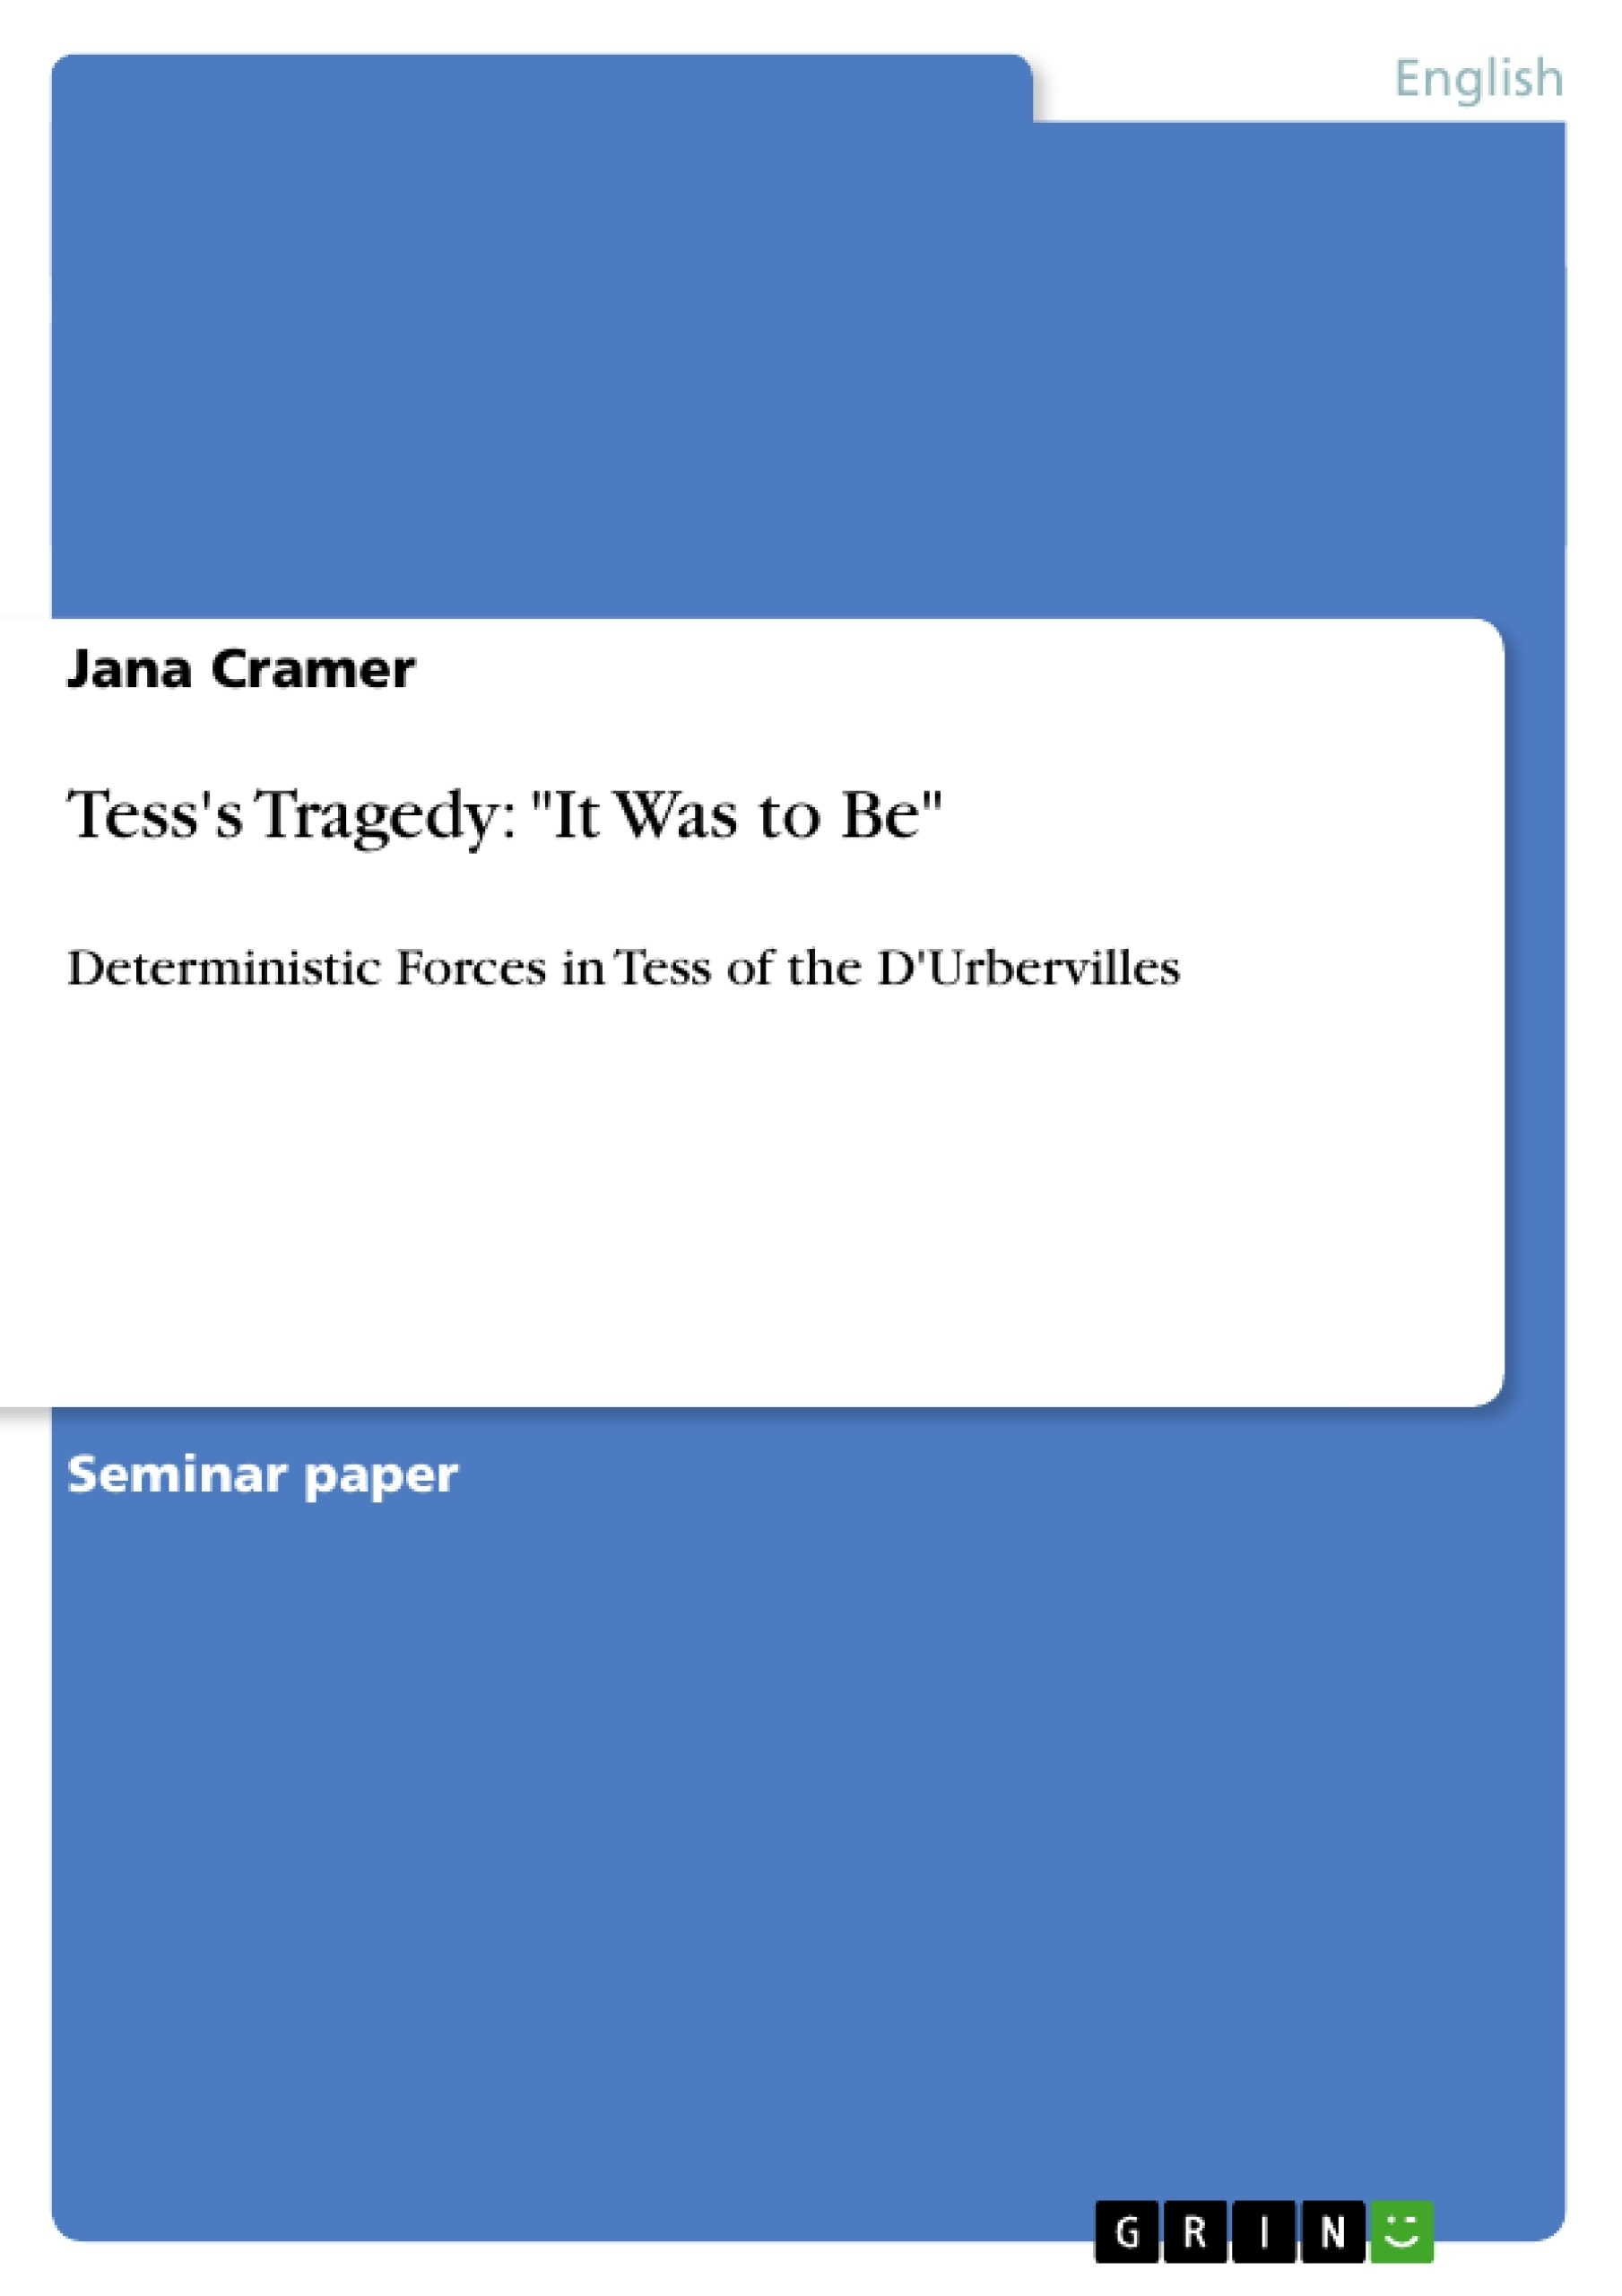 tess s tragedy it was to be publish your master s thesis tess s tragedy it was to be publish your master s thesis bachelor s thesis essay or term paper